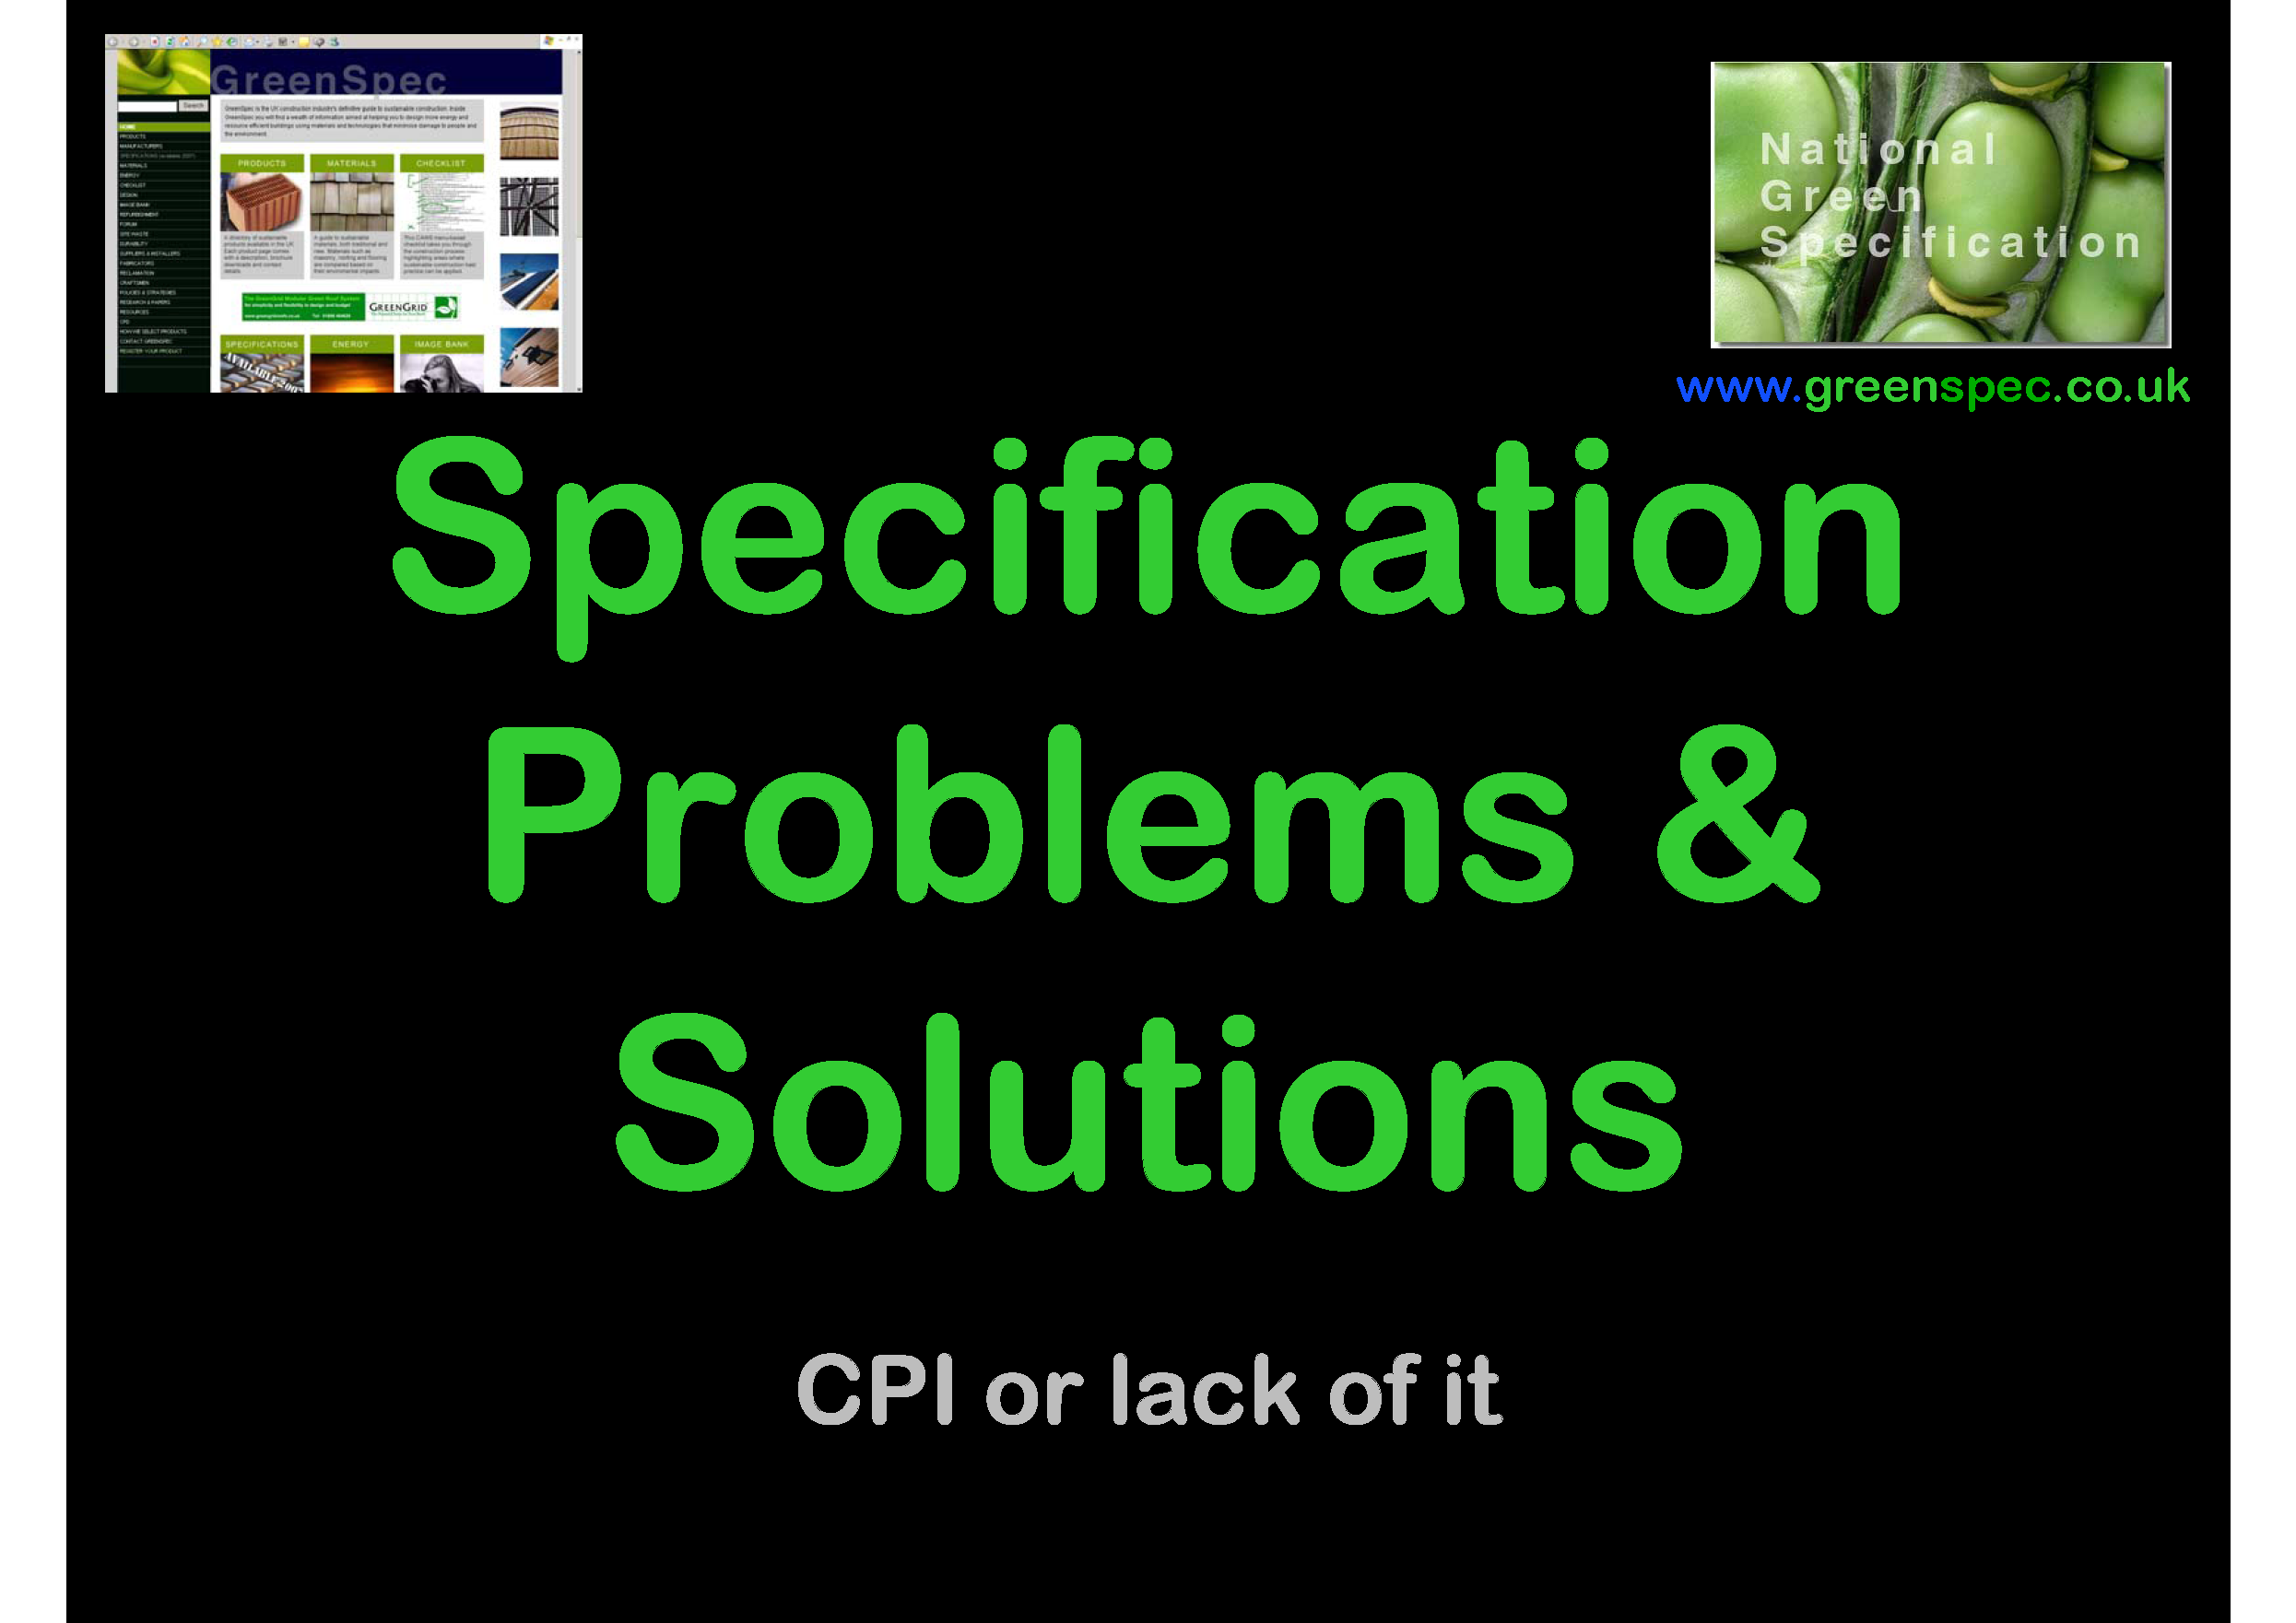 Specification Problems Solutions CPD Cover png